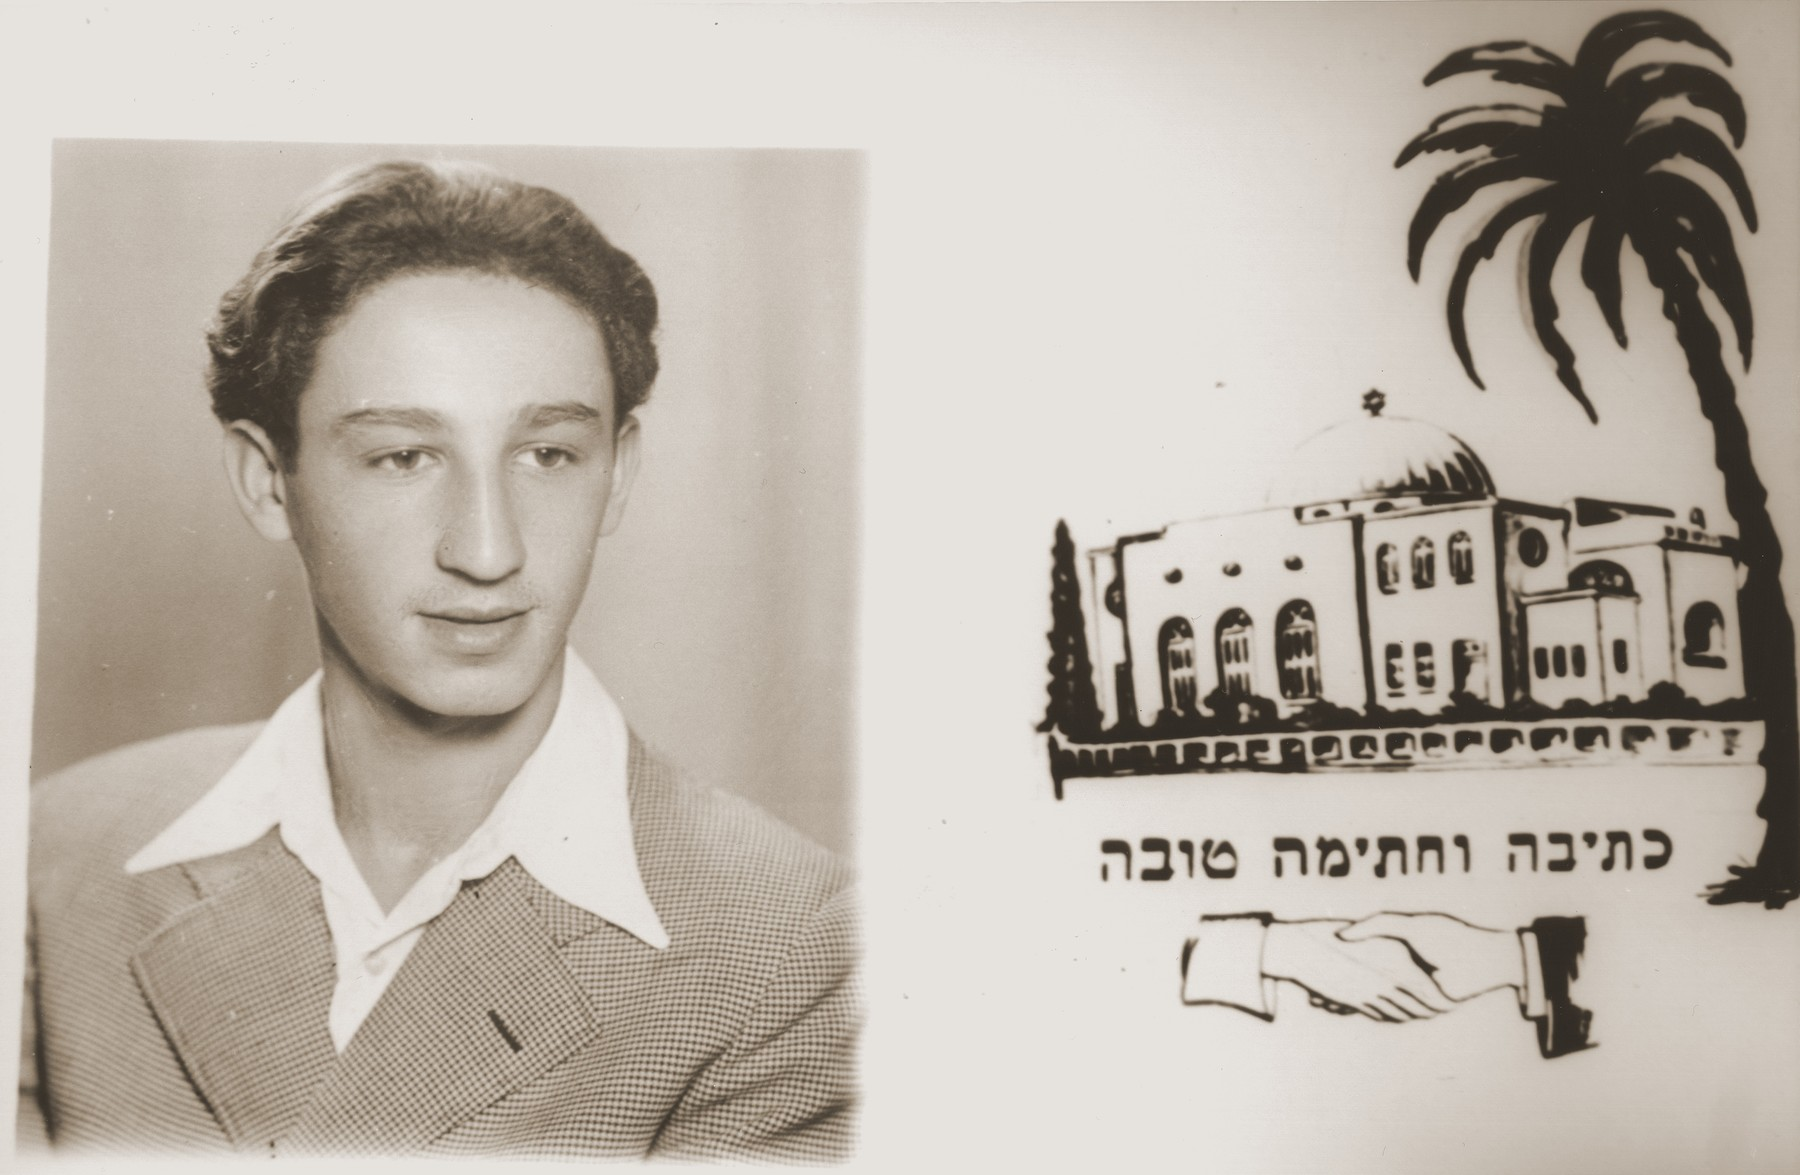 A Jewish New Year greeting card from Zvi Druttman, a friend of the donor.